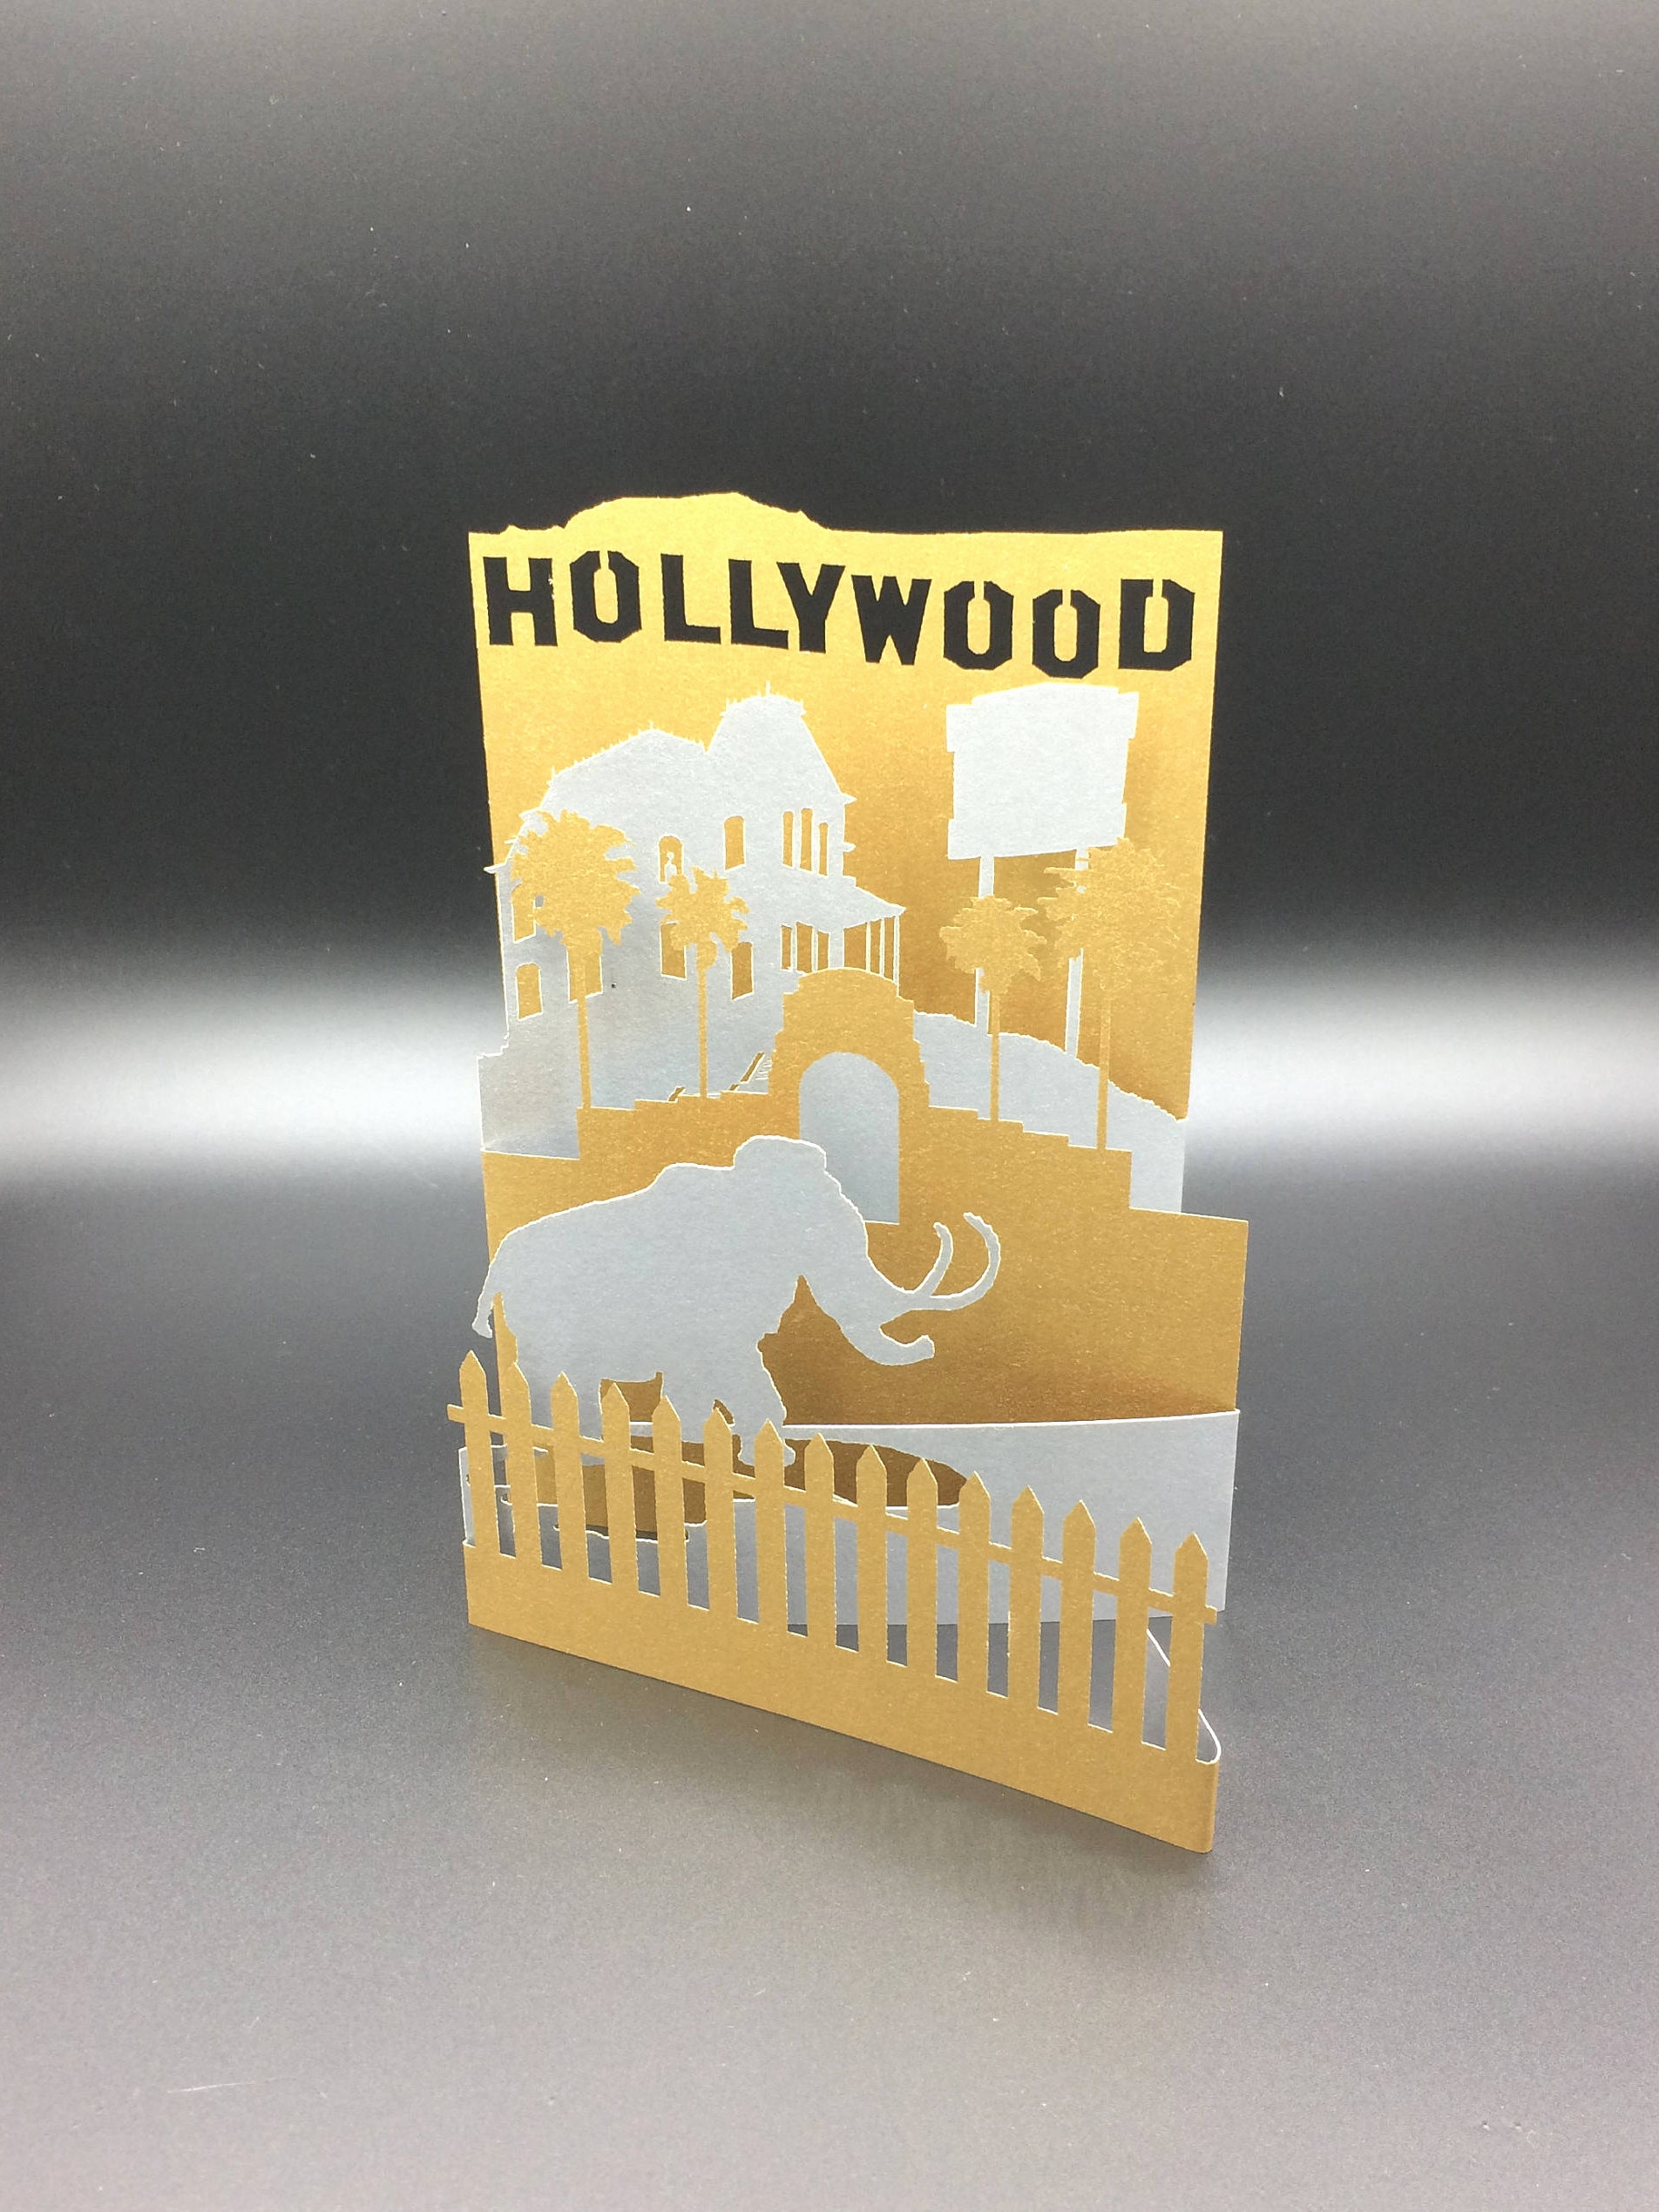 birthday card sites ; hollywood-birthday-card-unique-los-angeles-greeting-card-2-w-envelope-universal-studios-la-of-hollywood-birthday-card